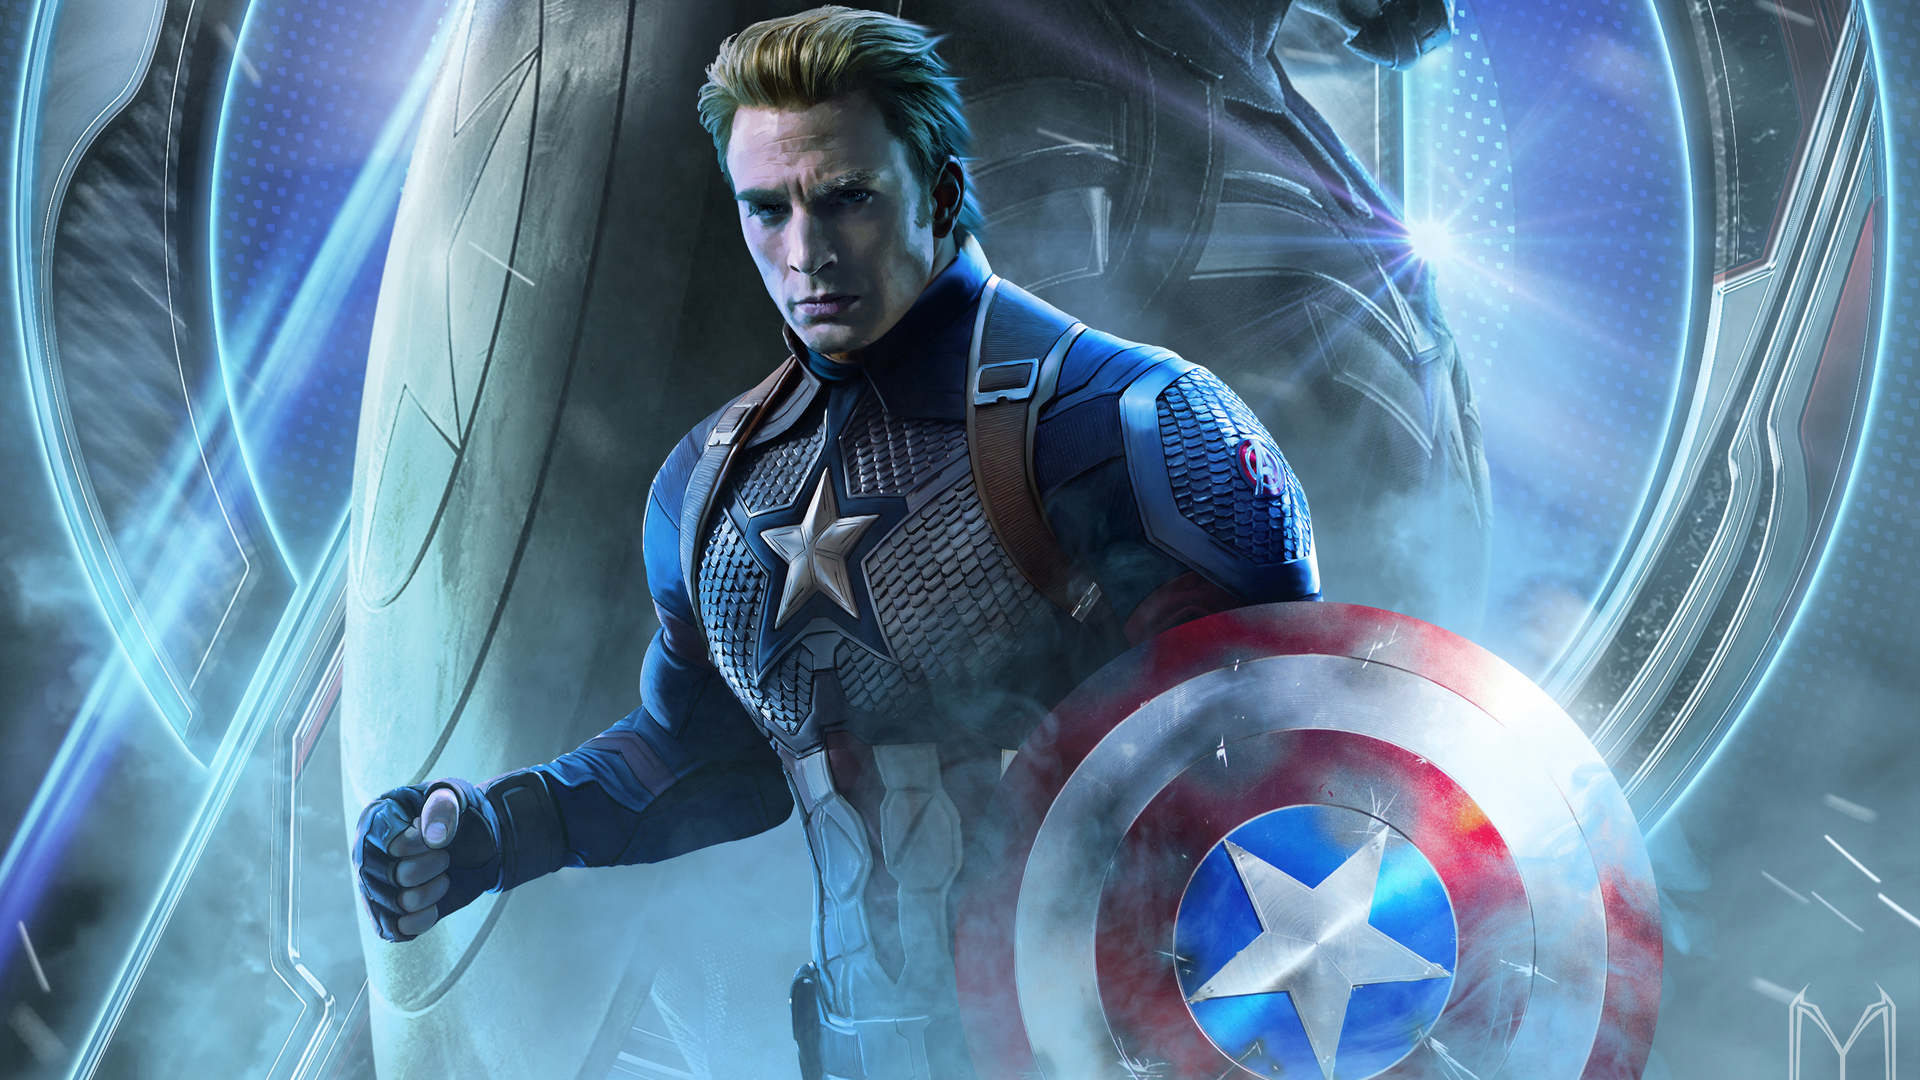 1920x1080 Captain America In Avengers Endgame 2019 Laptop Full Hd